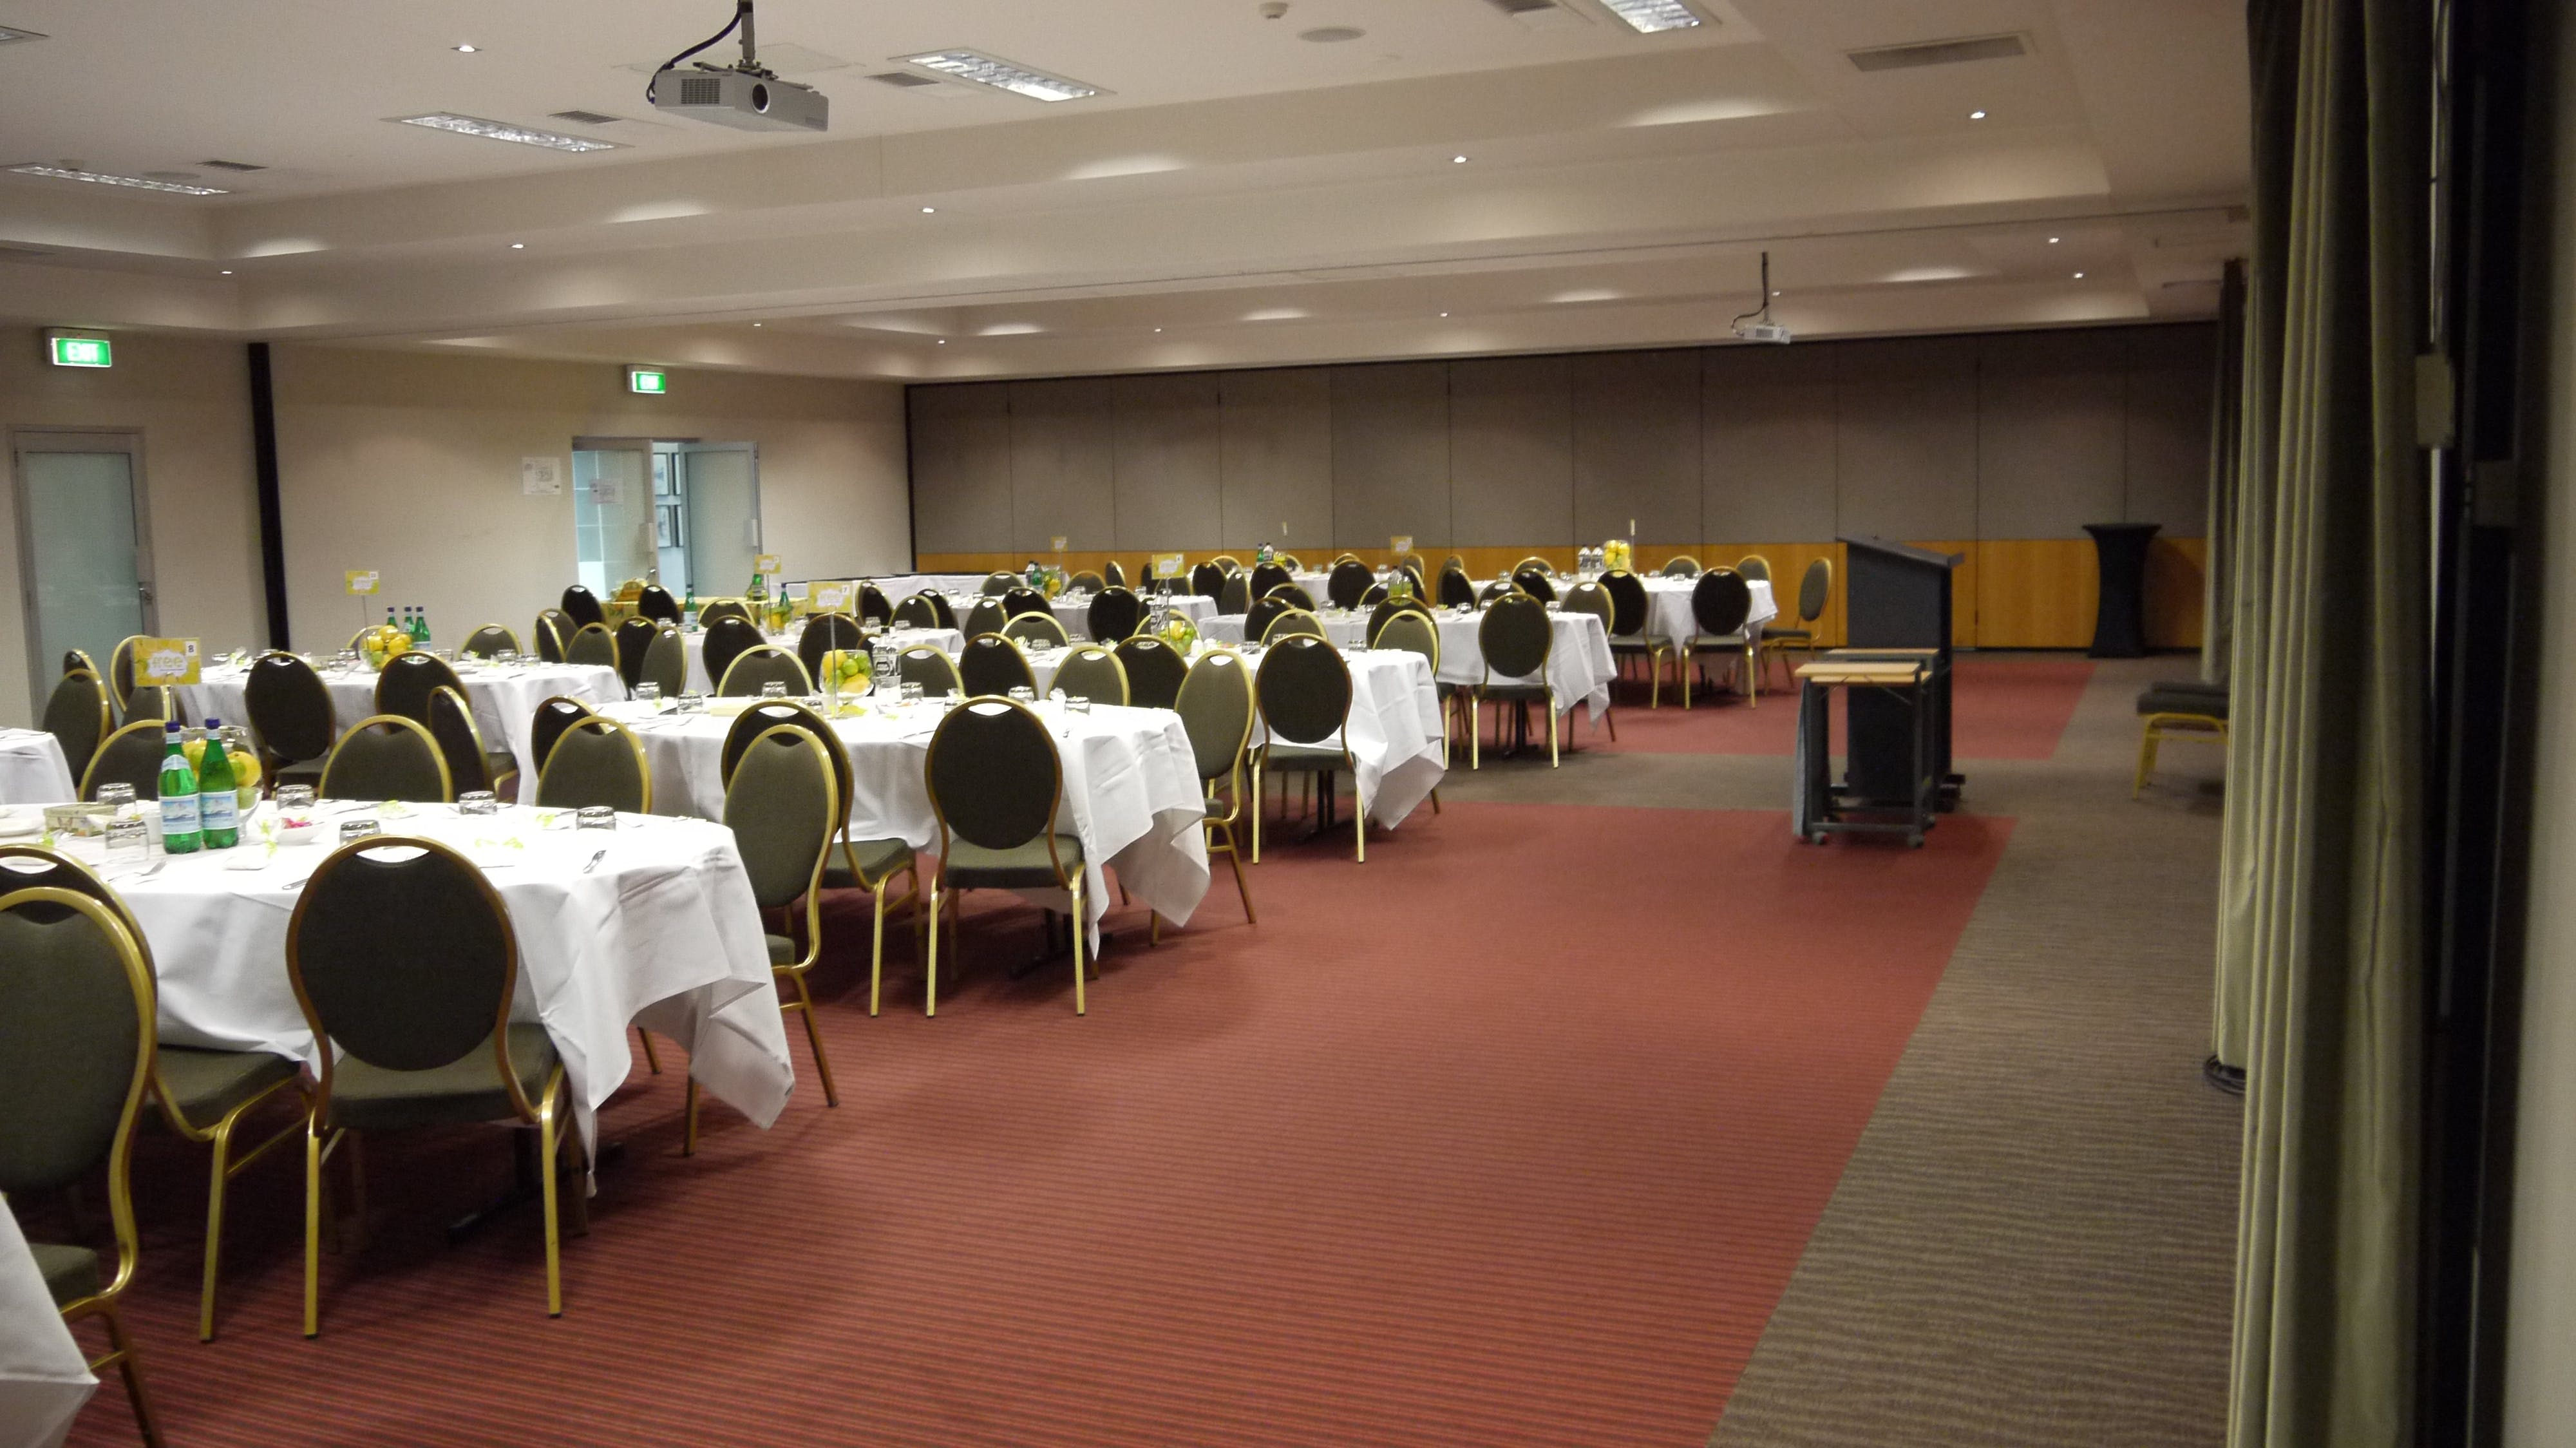 Booval Room, meeting room at Metro Hotel Ipswich International, image 1